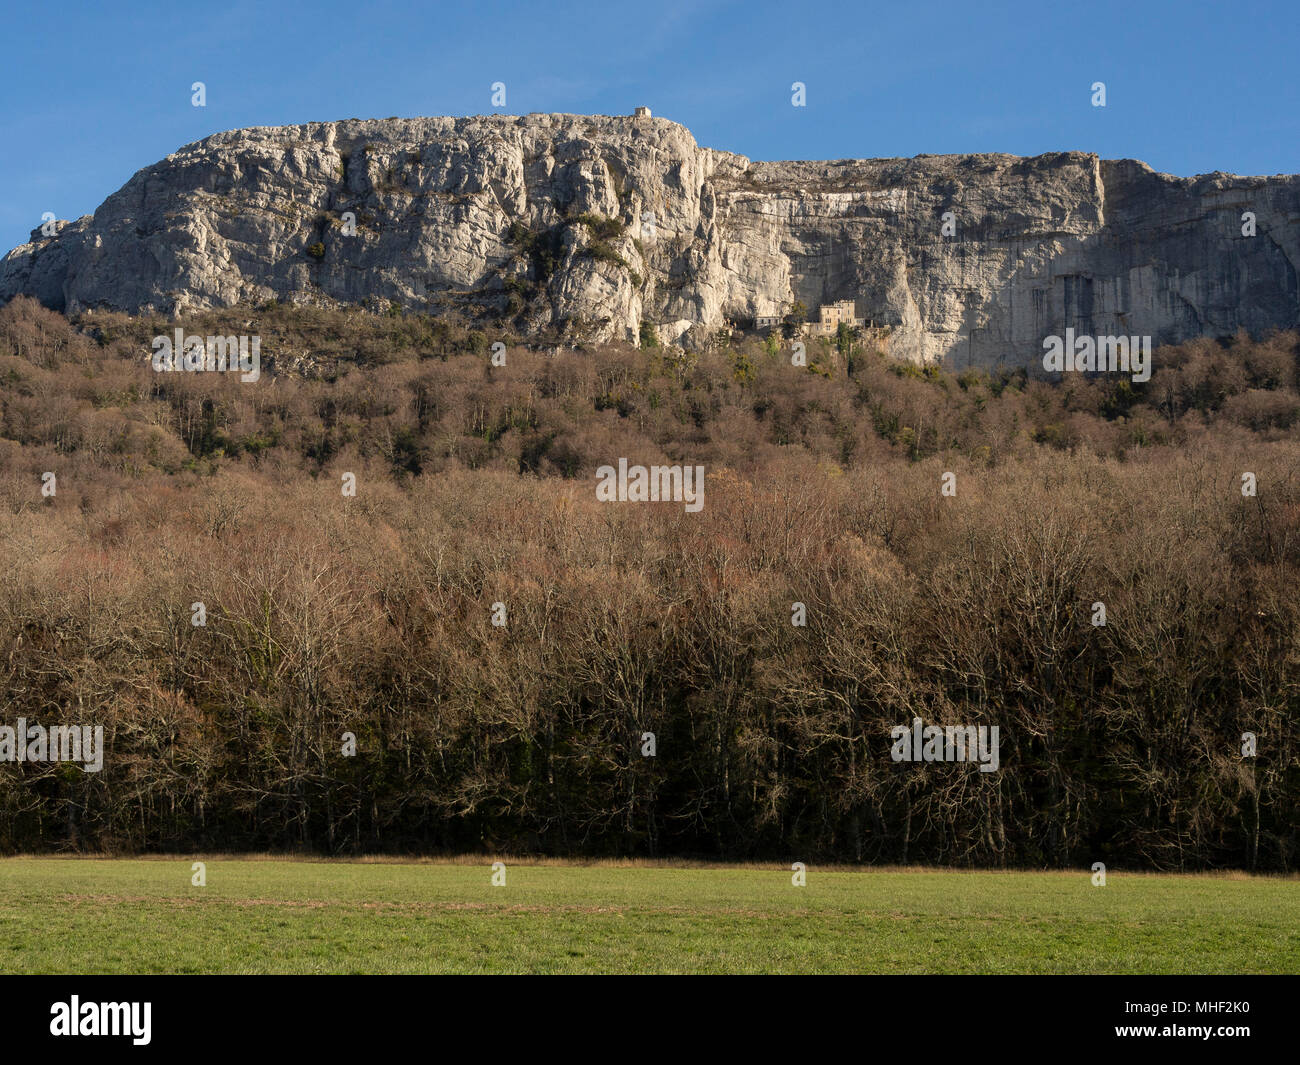 Massif of Sainte-Baume and its Sanctuary. - Stock Image